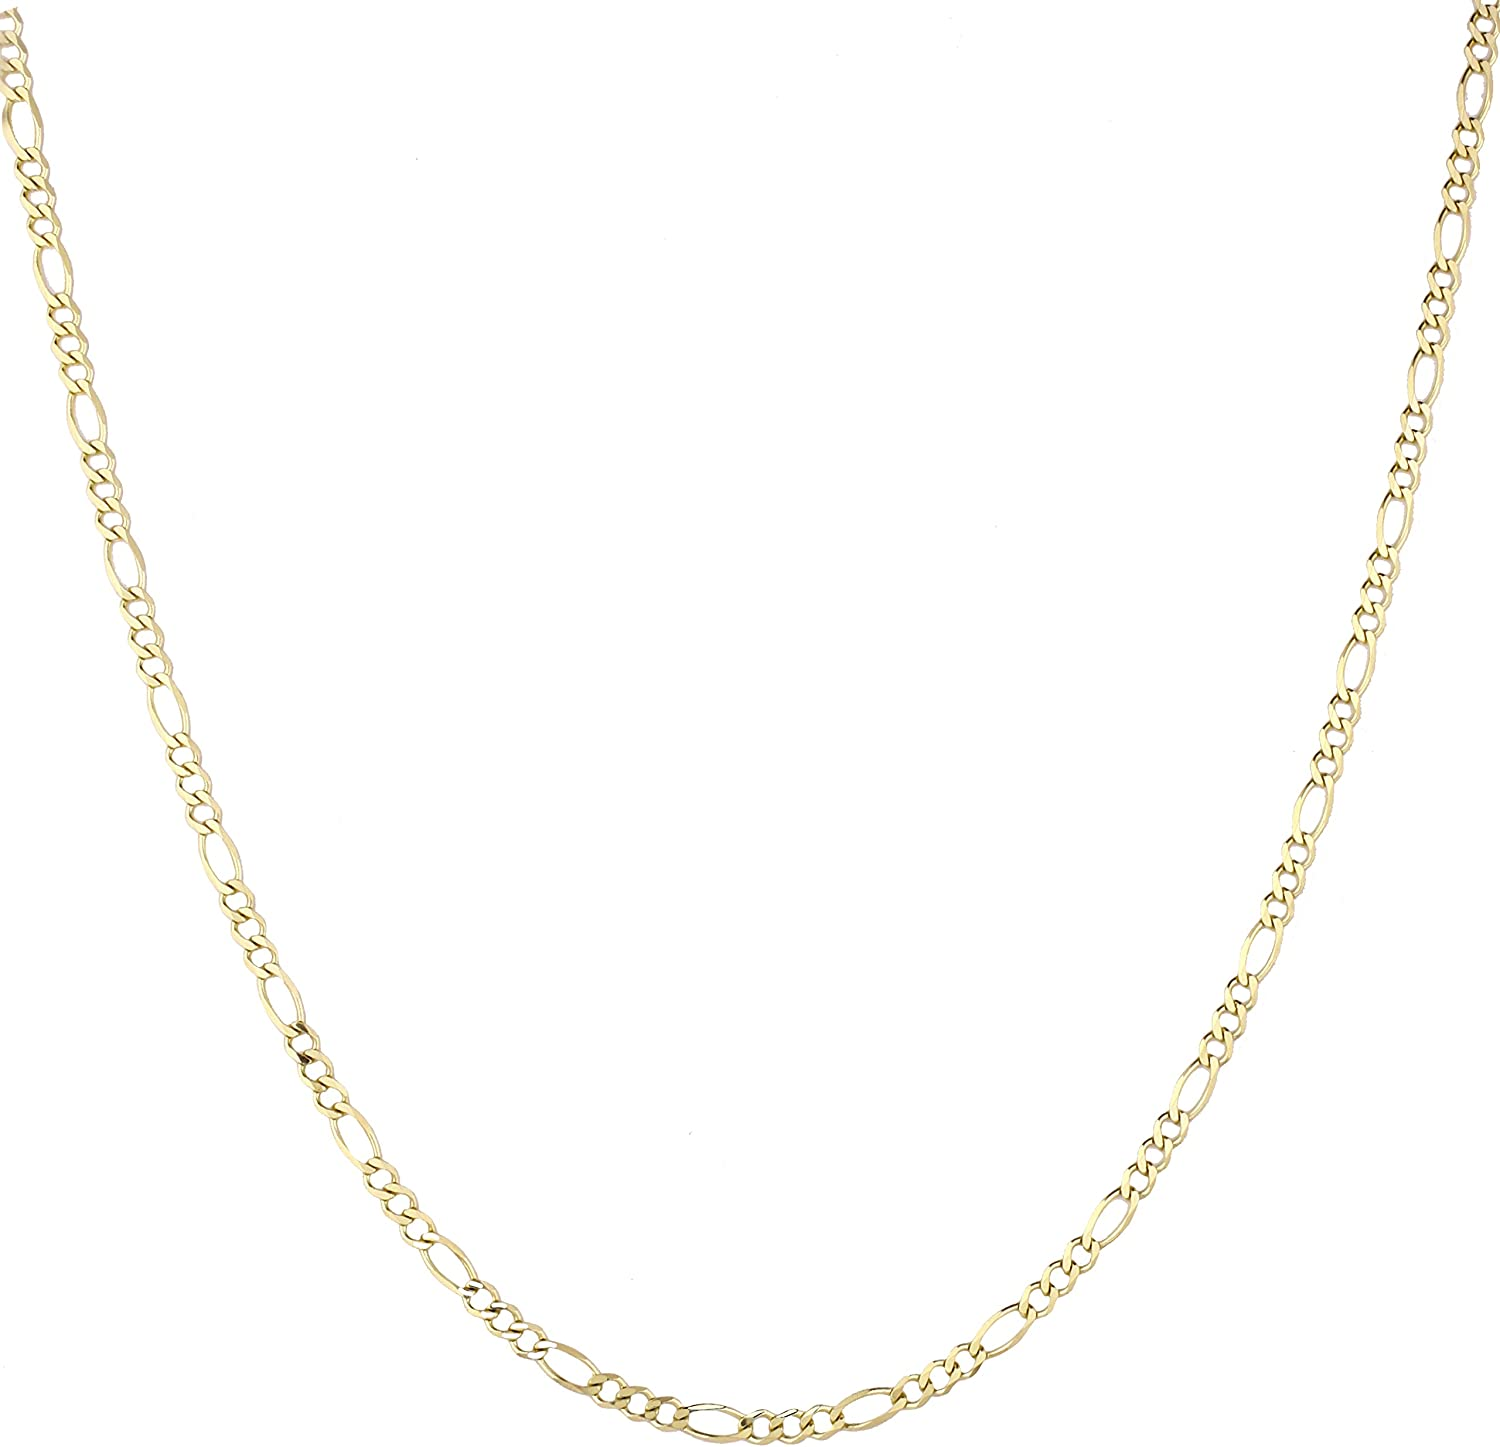 LUXURMAN 14k Yellow Solid Gold 2.8mm Diamond Cut Figaro Chain Necklace, Bracelet or Anklet Lobster Clasp